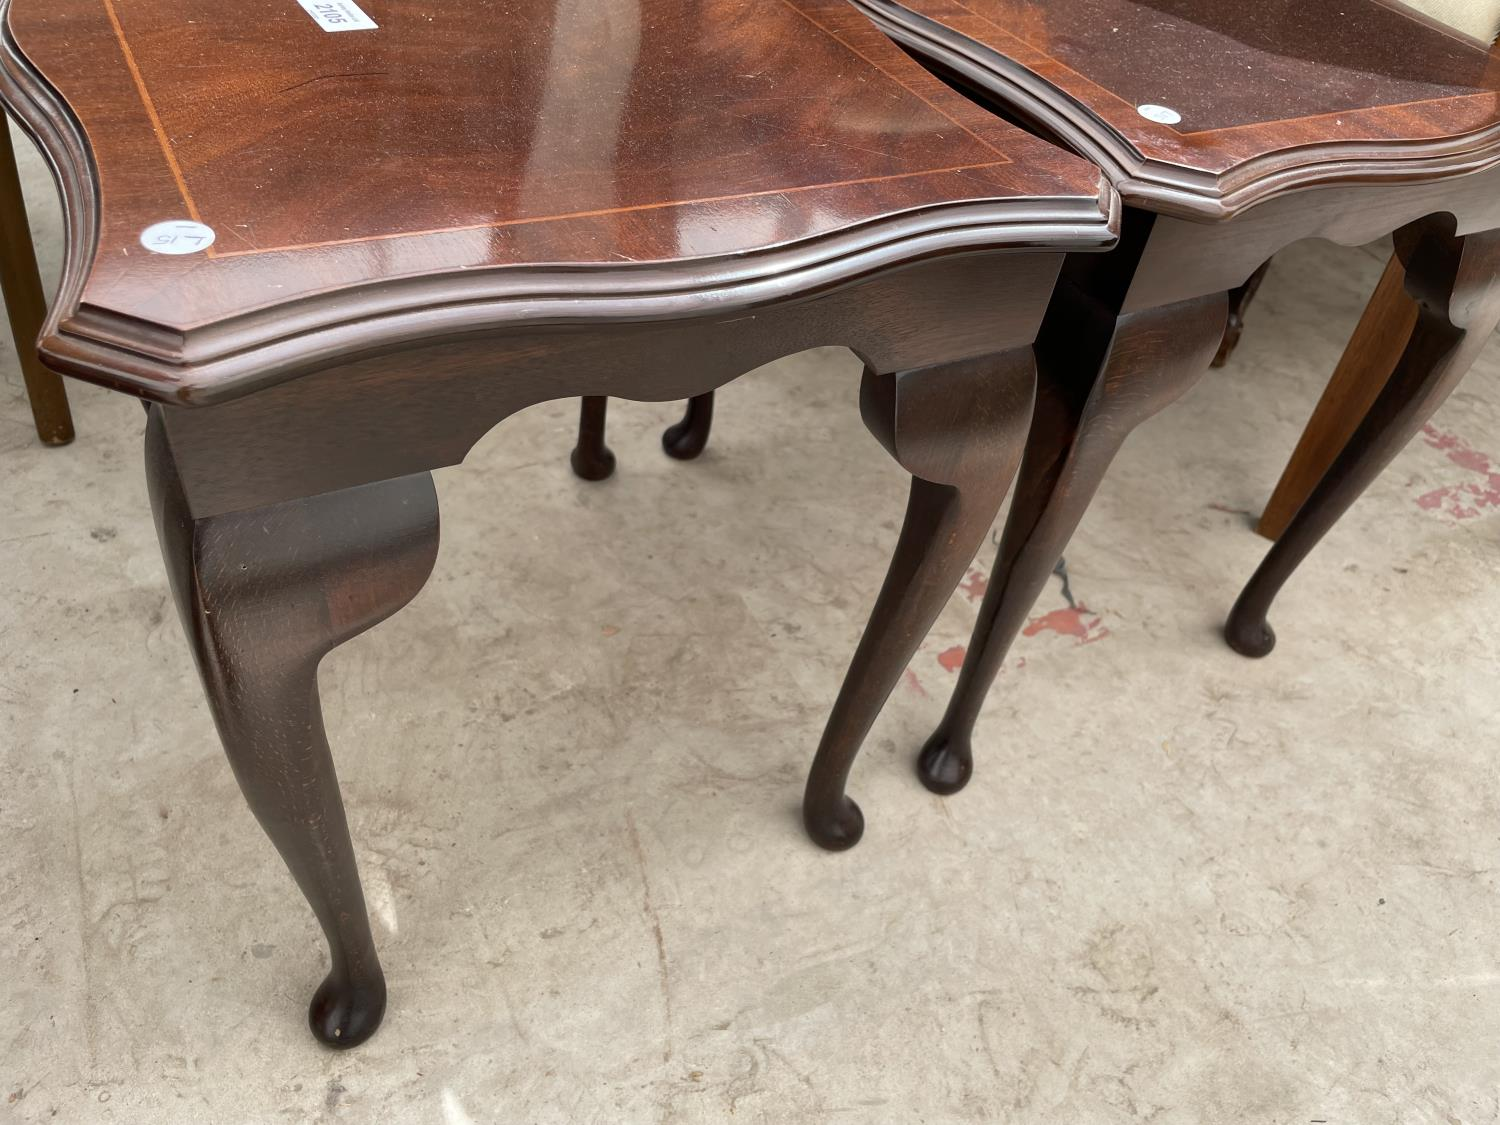 """A PAIR OF MAHOGANY AND INLAID LAMP TABLES, 18.5X15.5"""" - Image 3 of 3"""